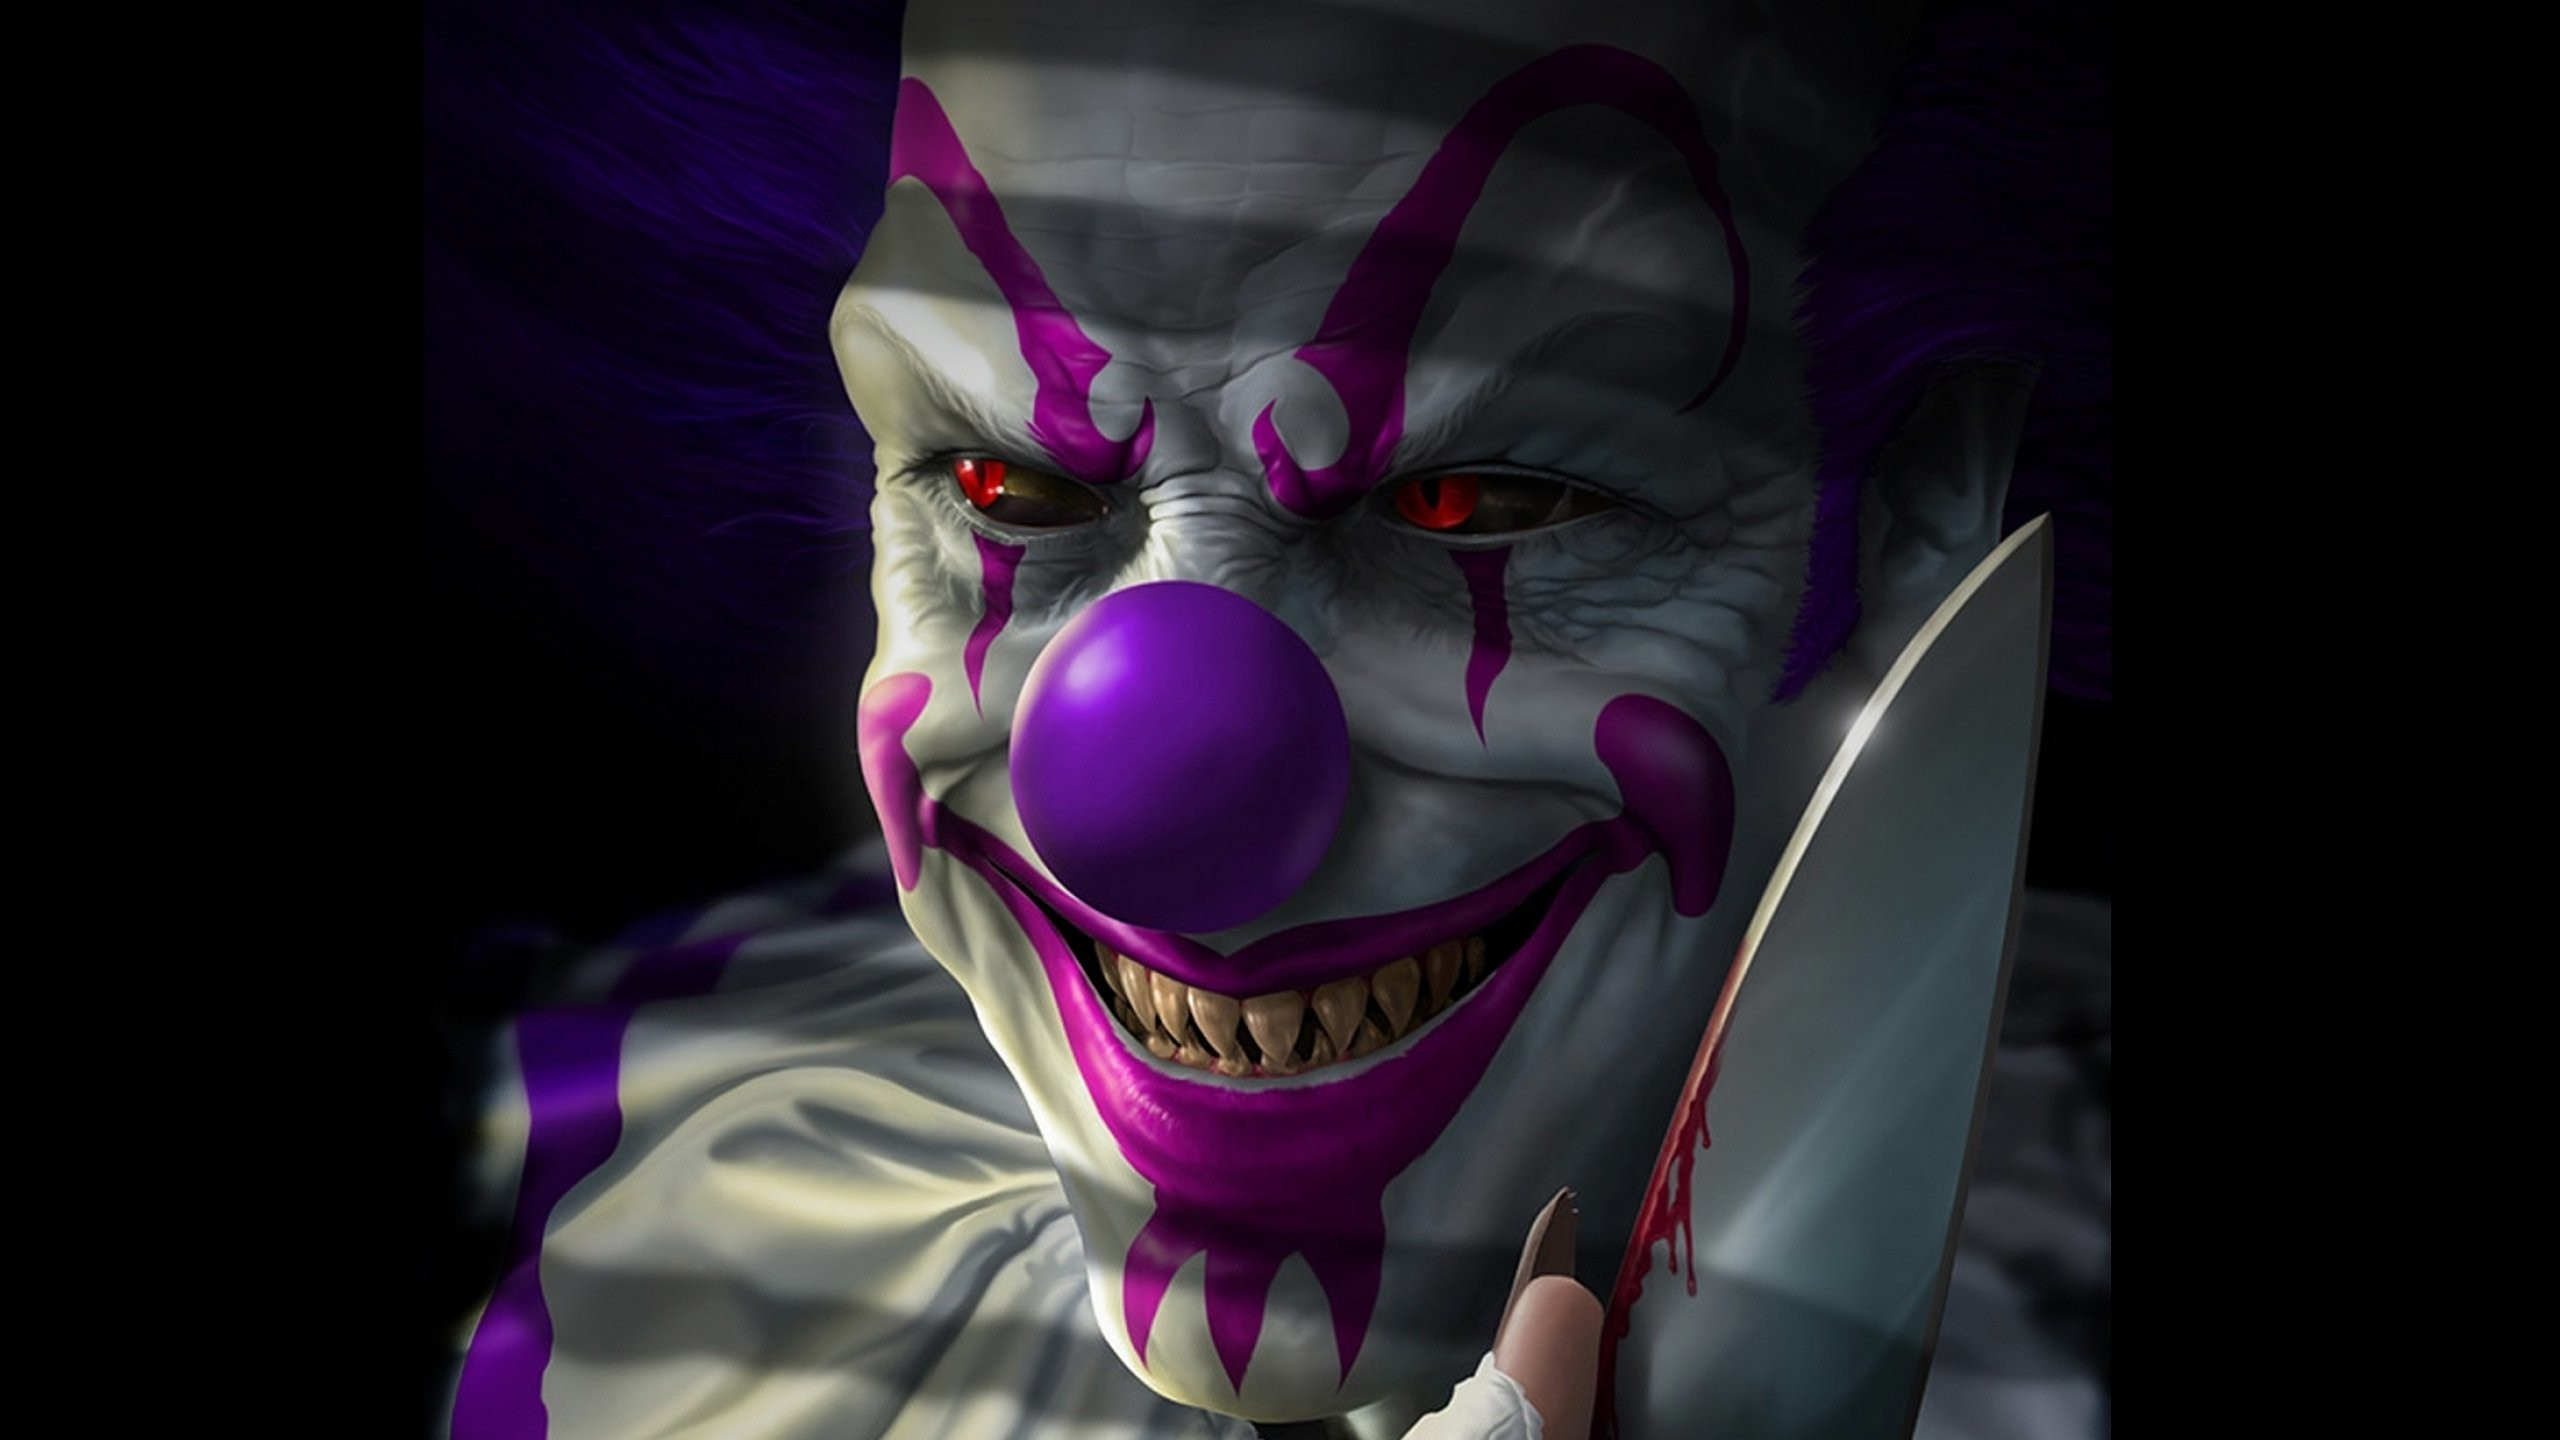 Res: 2560x1440, 1920x1080 10. scary-clown-wallpaper-HD10-600x338